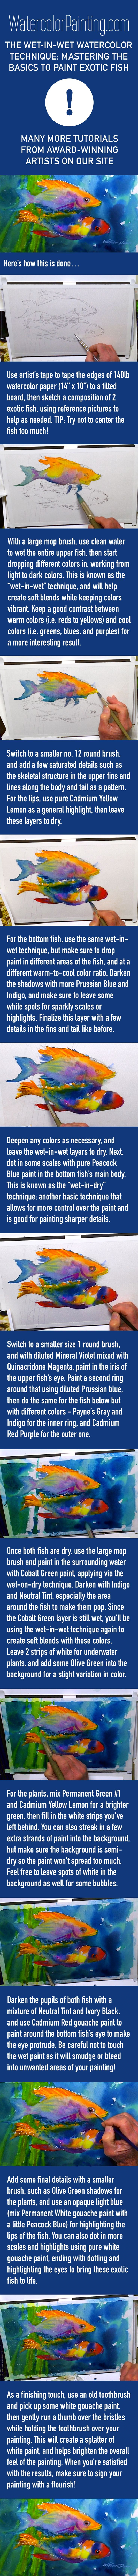 Become a Master of the basic Wet-In-Wet watercolor technique while painting a few exotic fish along the way! Various beginner, intermediate & advanced watercolor techniques are taught step-by-step so you can follow along. #paintingideas Click here for free full tutorial: https://watercolorpainting.com/wet-in-wet-watercolor-exotic-fish/?utm_source=pinterest&utm_medium=pin-stepbystep&utm_campaign=pinterest-organic-footprint&utm_content=exotic-fish